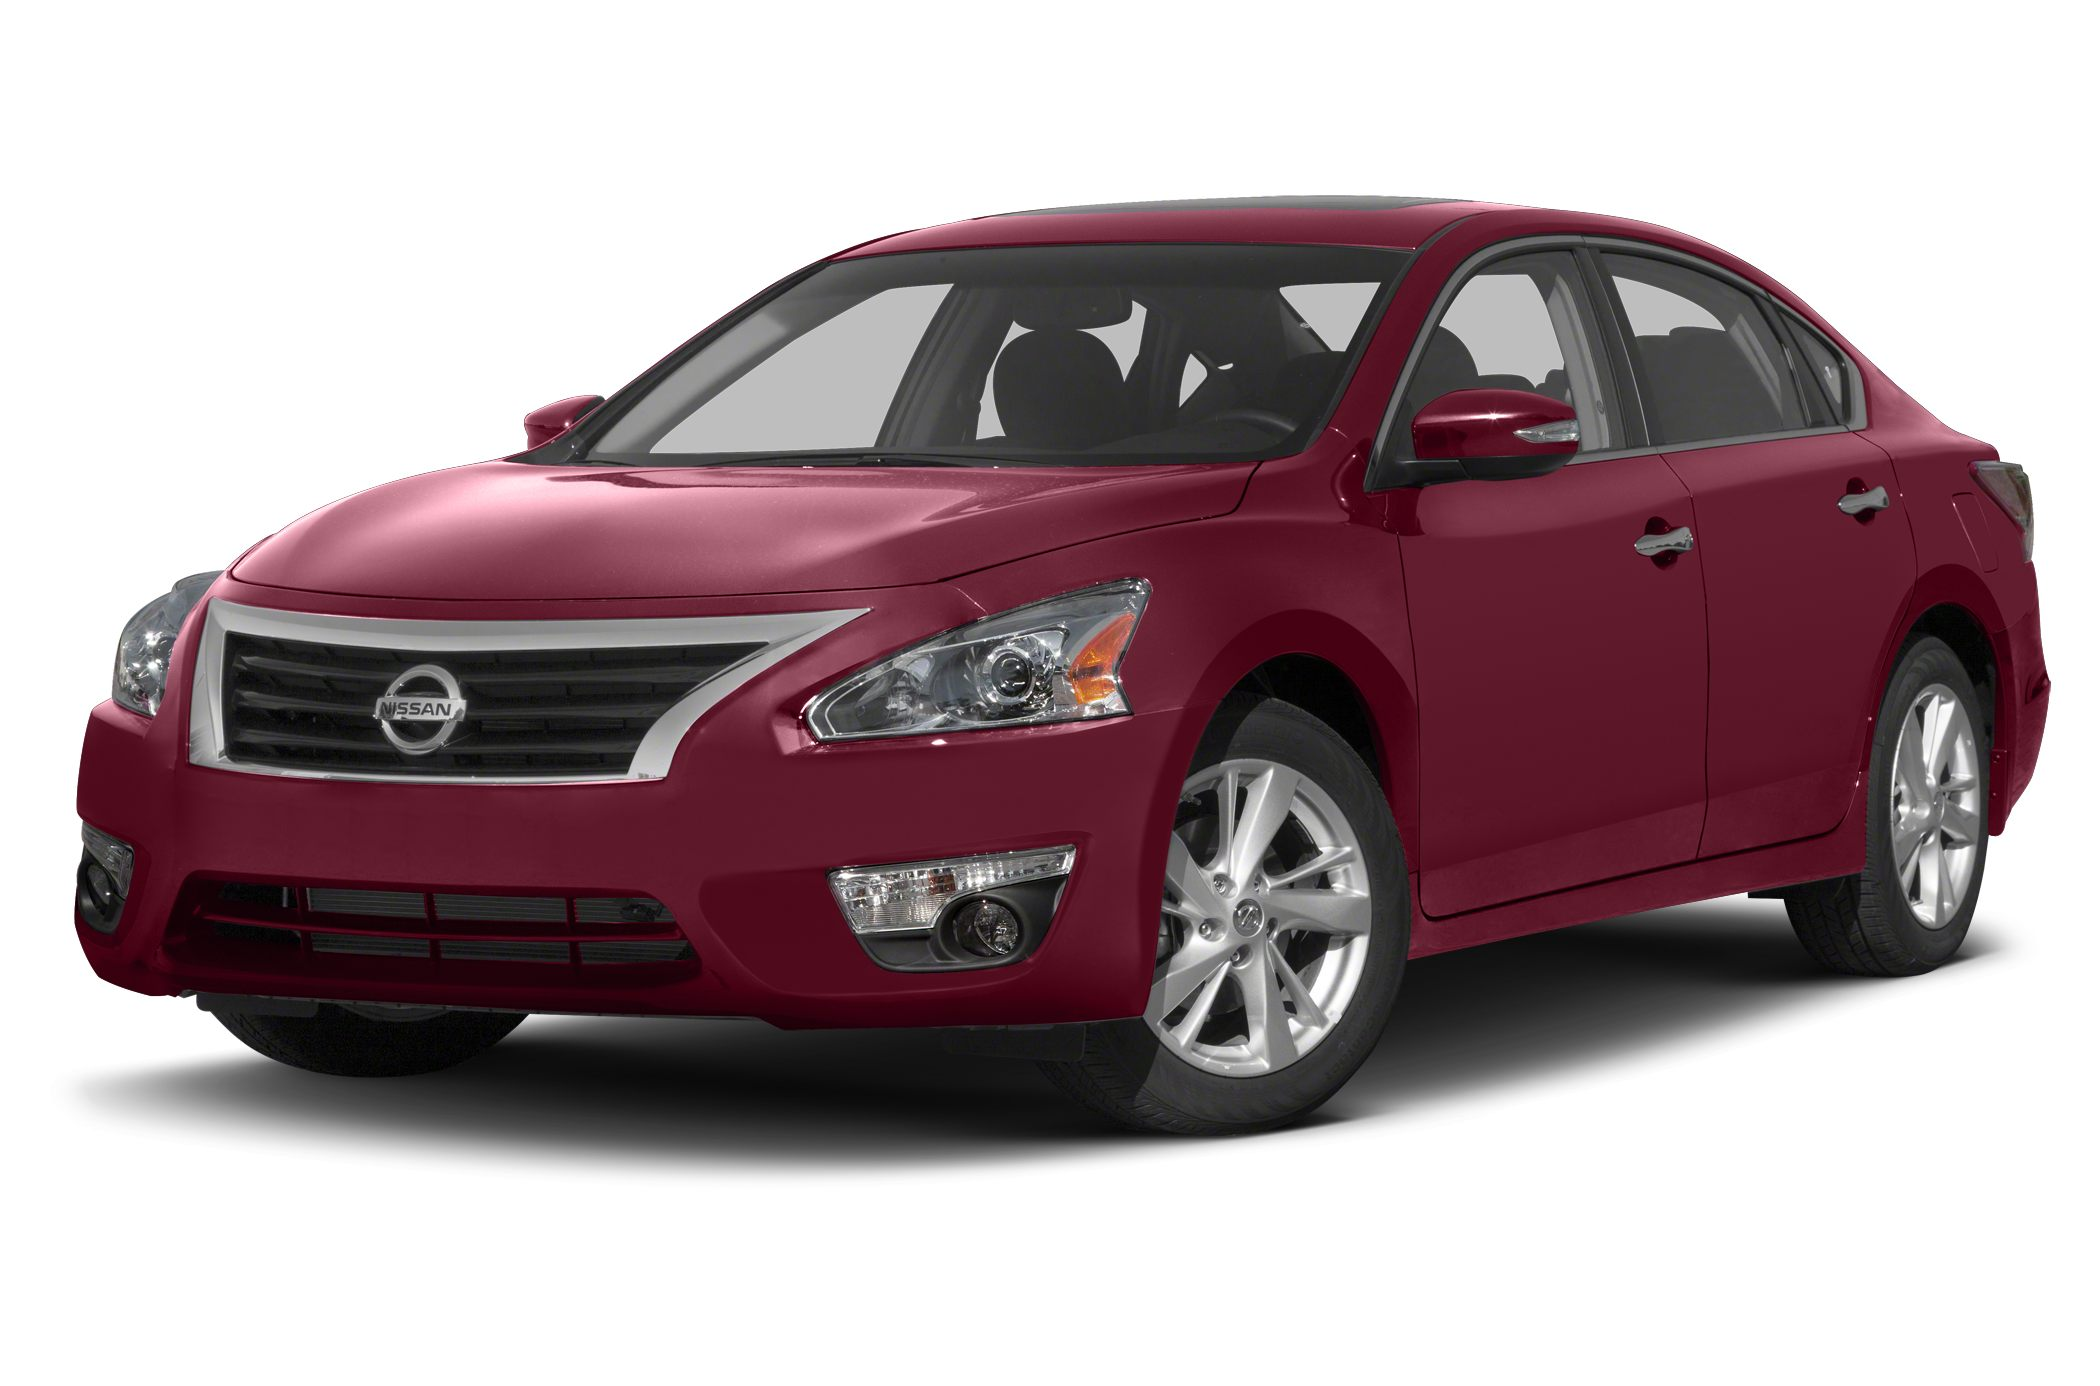 2013 Nissan Altima 2.5 SL Sedan for sale in London for $25,266 with 24,000 miles.